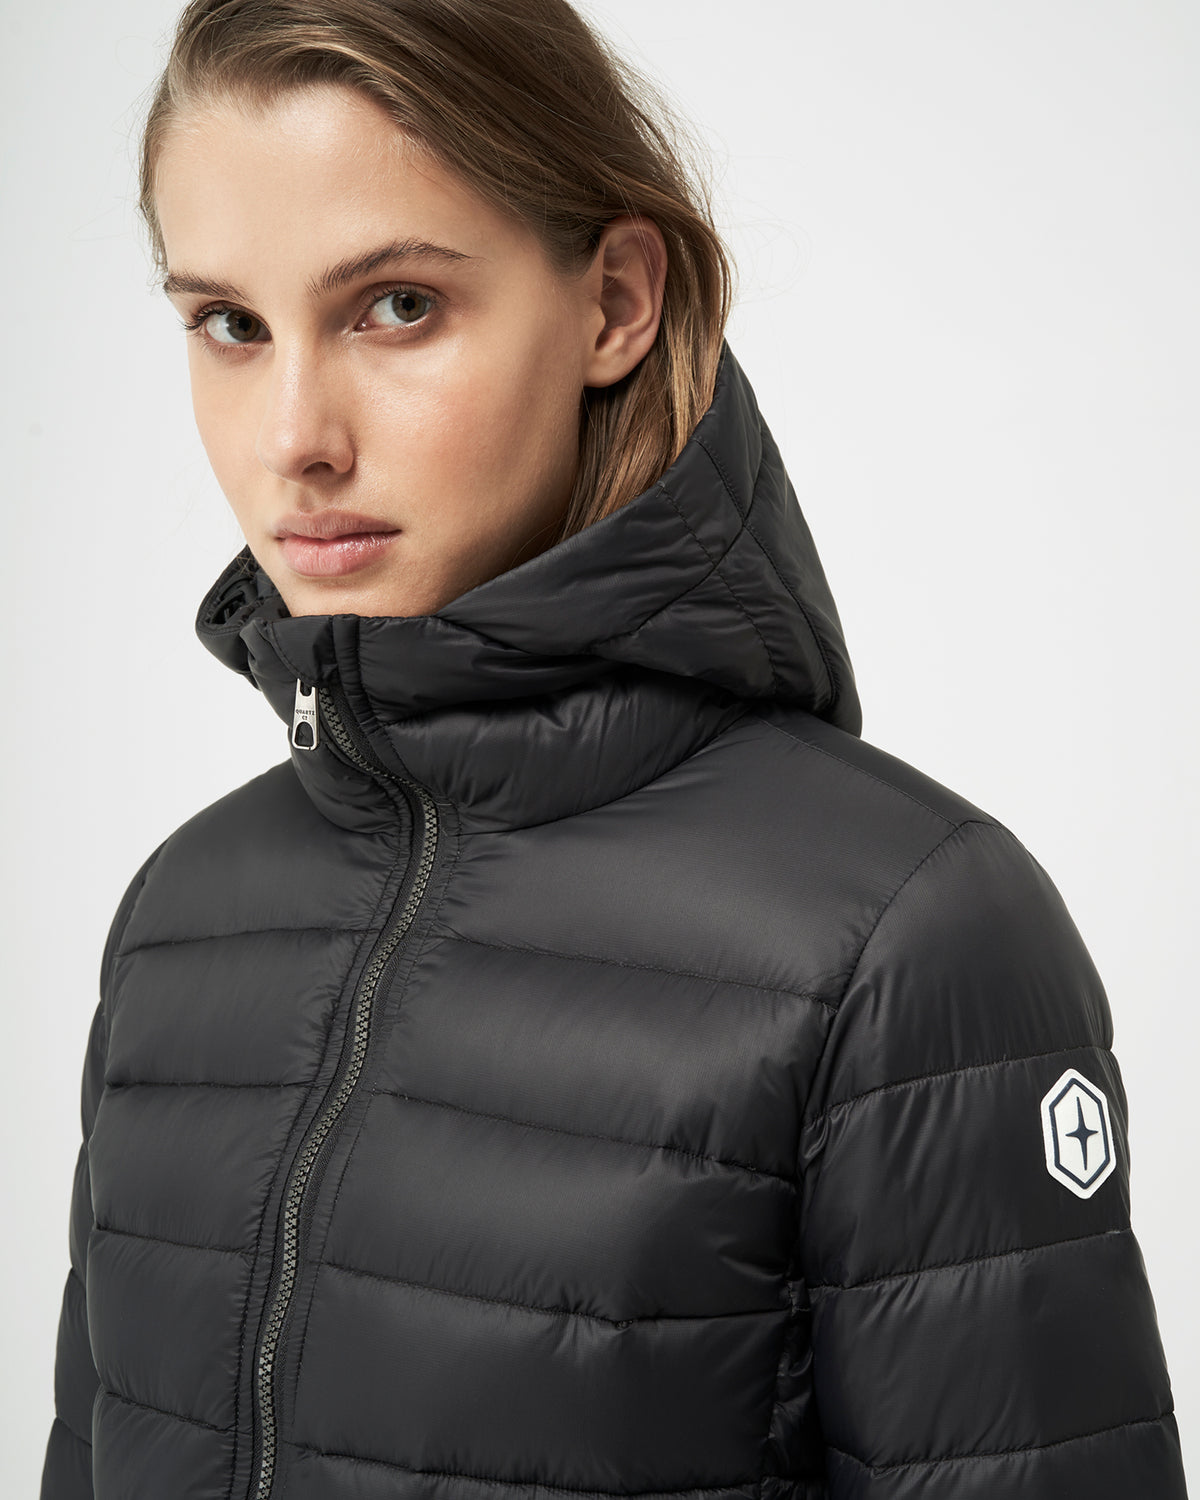 Quartz Co. - Canadian Made Winter Jackets | Women | Lausanne | Women Down Lightweight jacket | Detailed